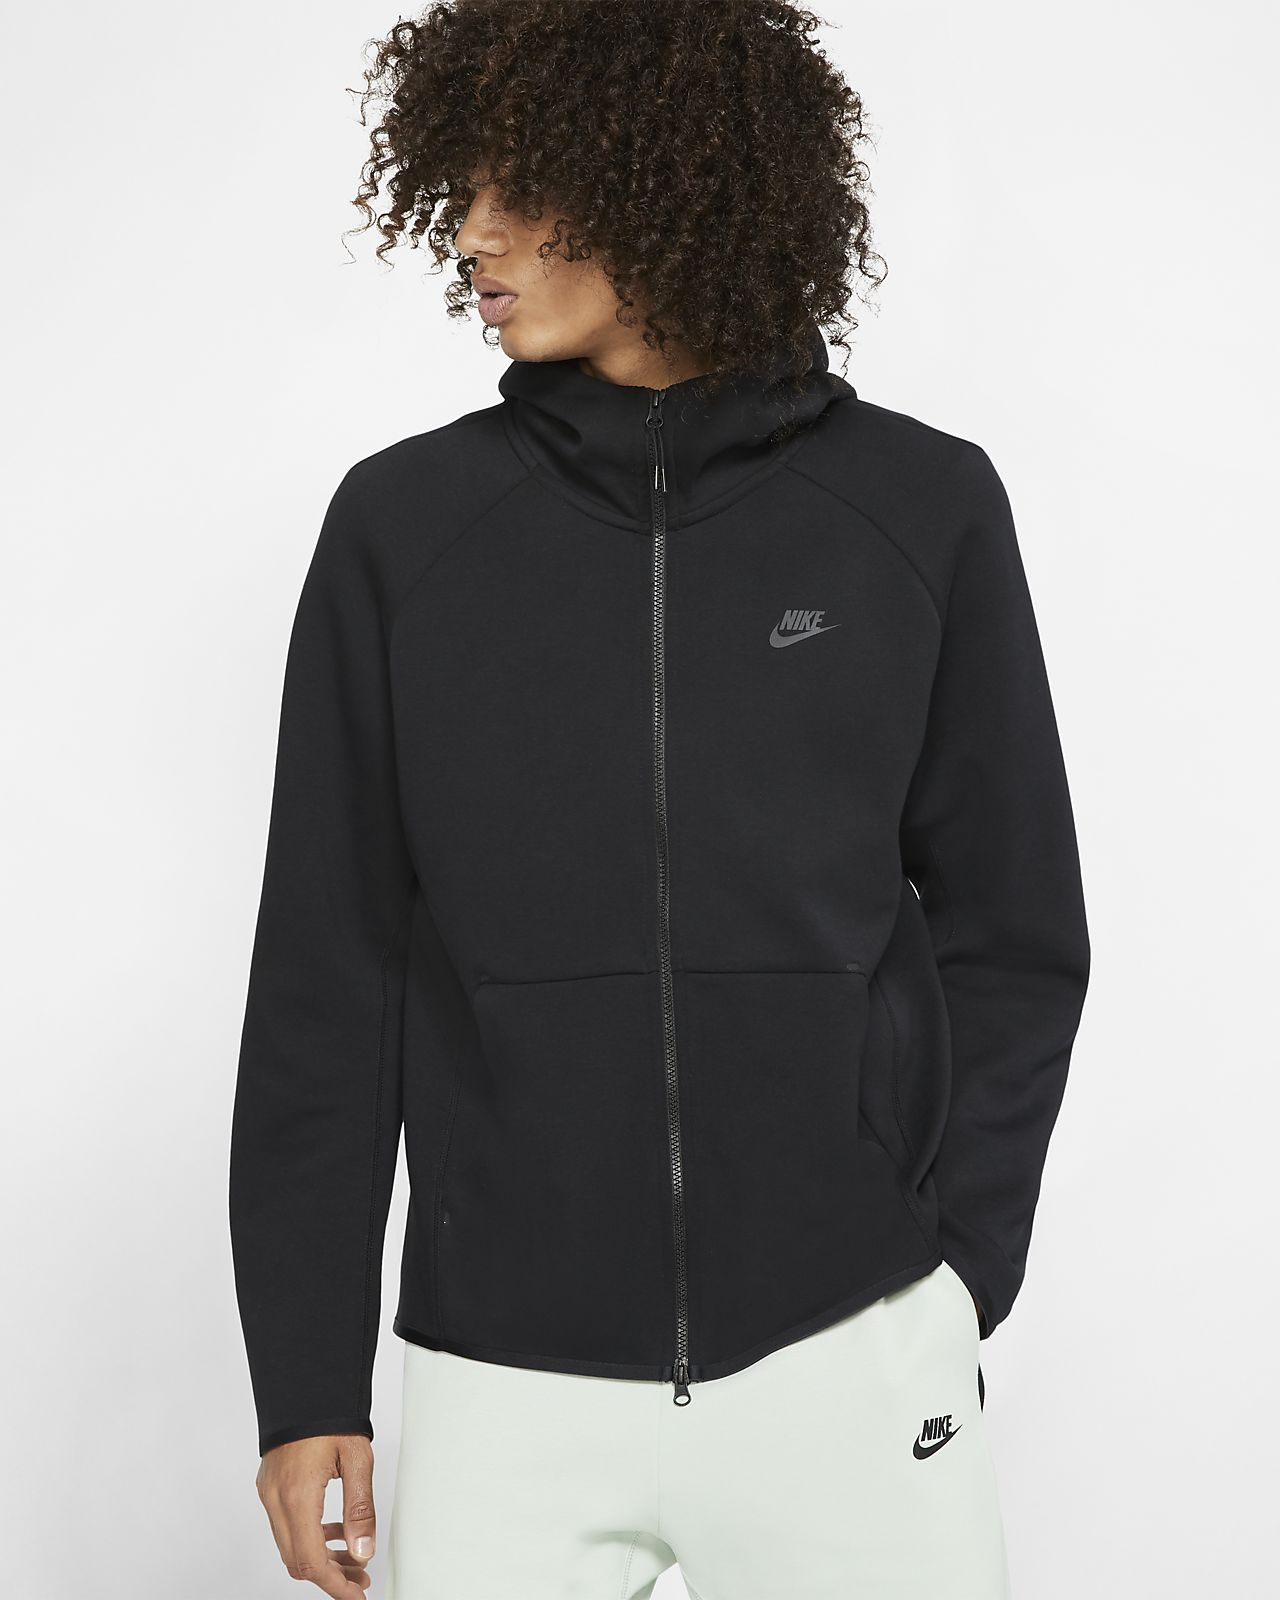 43fc8246f190 Nike Sportswear Tech Fleece Men s Full-Zip Hoodie. Nike.com CH